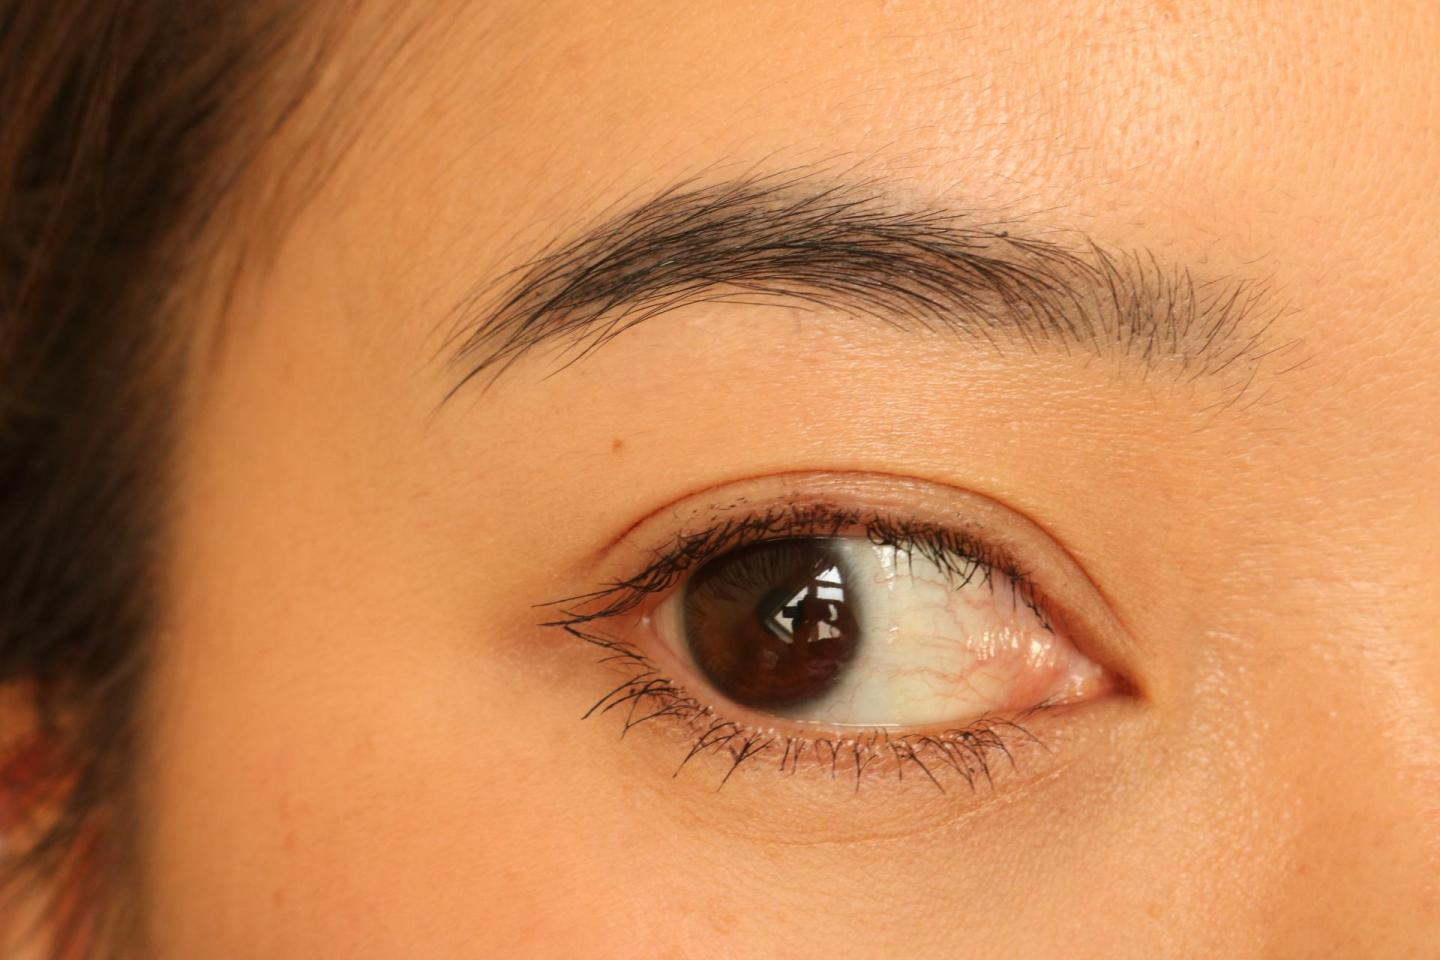 testing Clarins Wonder Perfect Mascara 4D